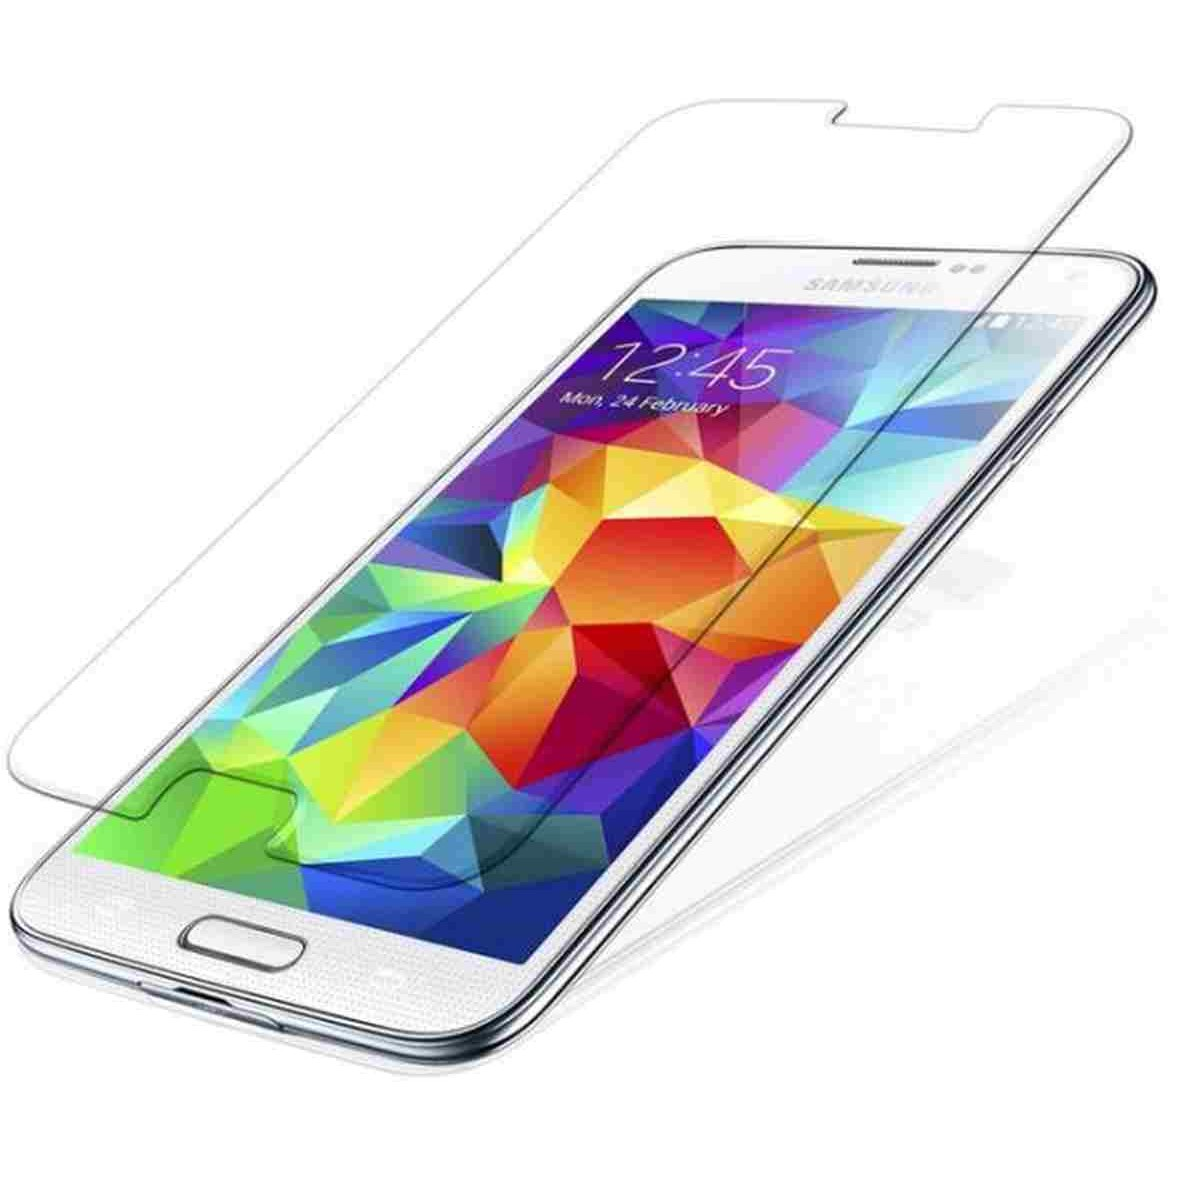 6dfe4937cee Tempered Glass Screen Protector Guard for Samsung Galaxy Grand Prime Duos  TV SM-G530BT ...